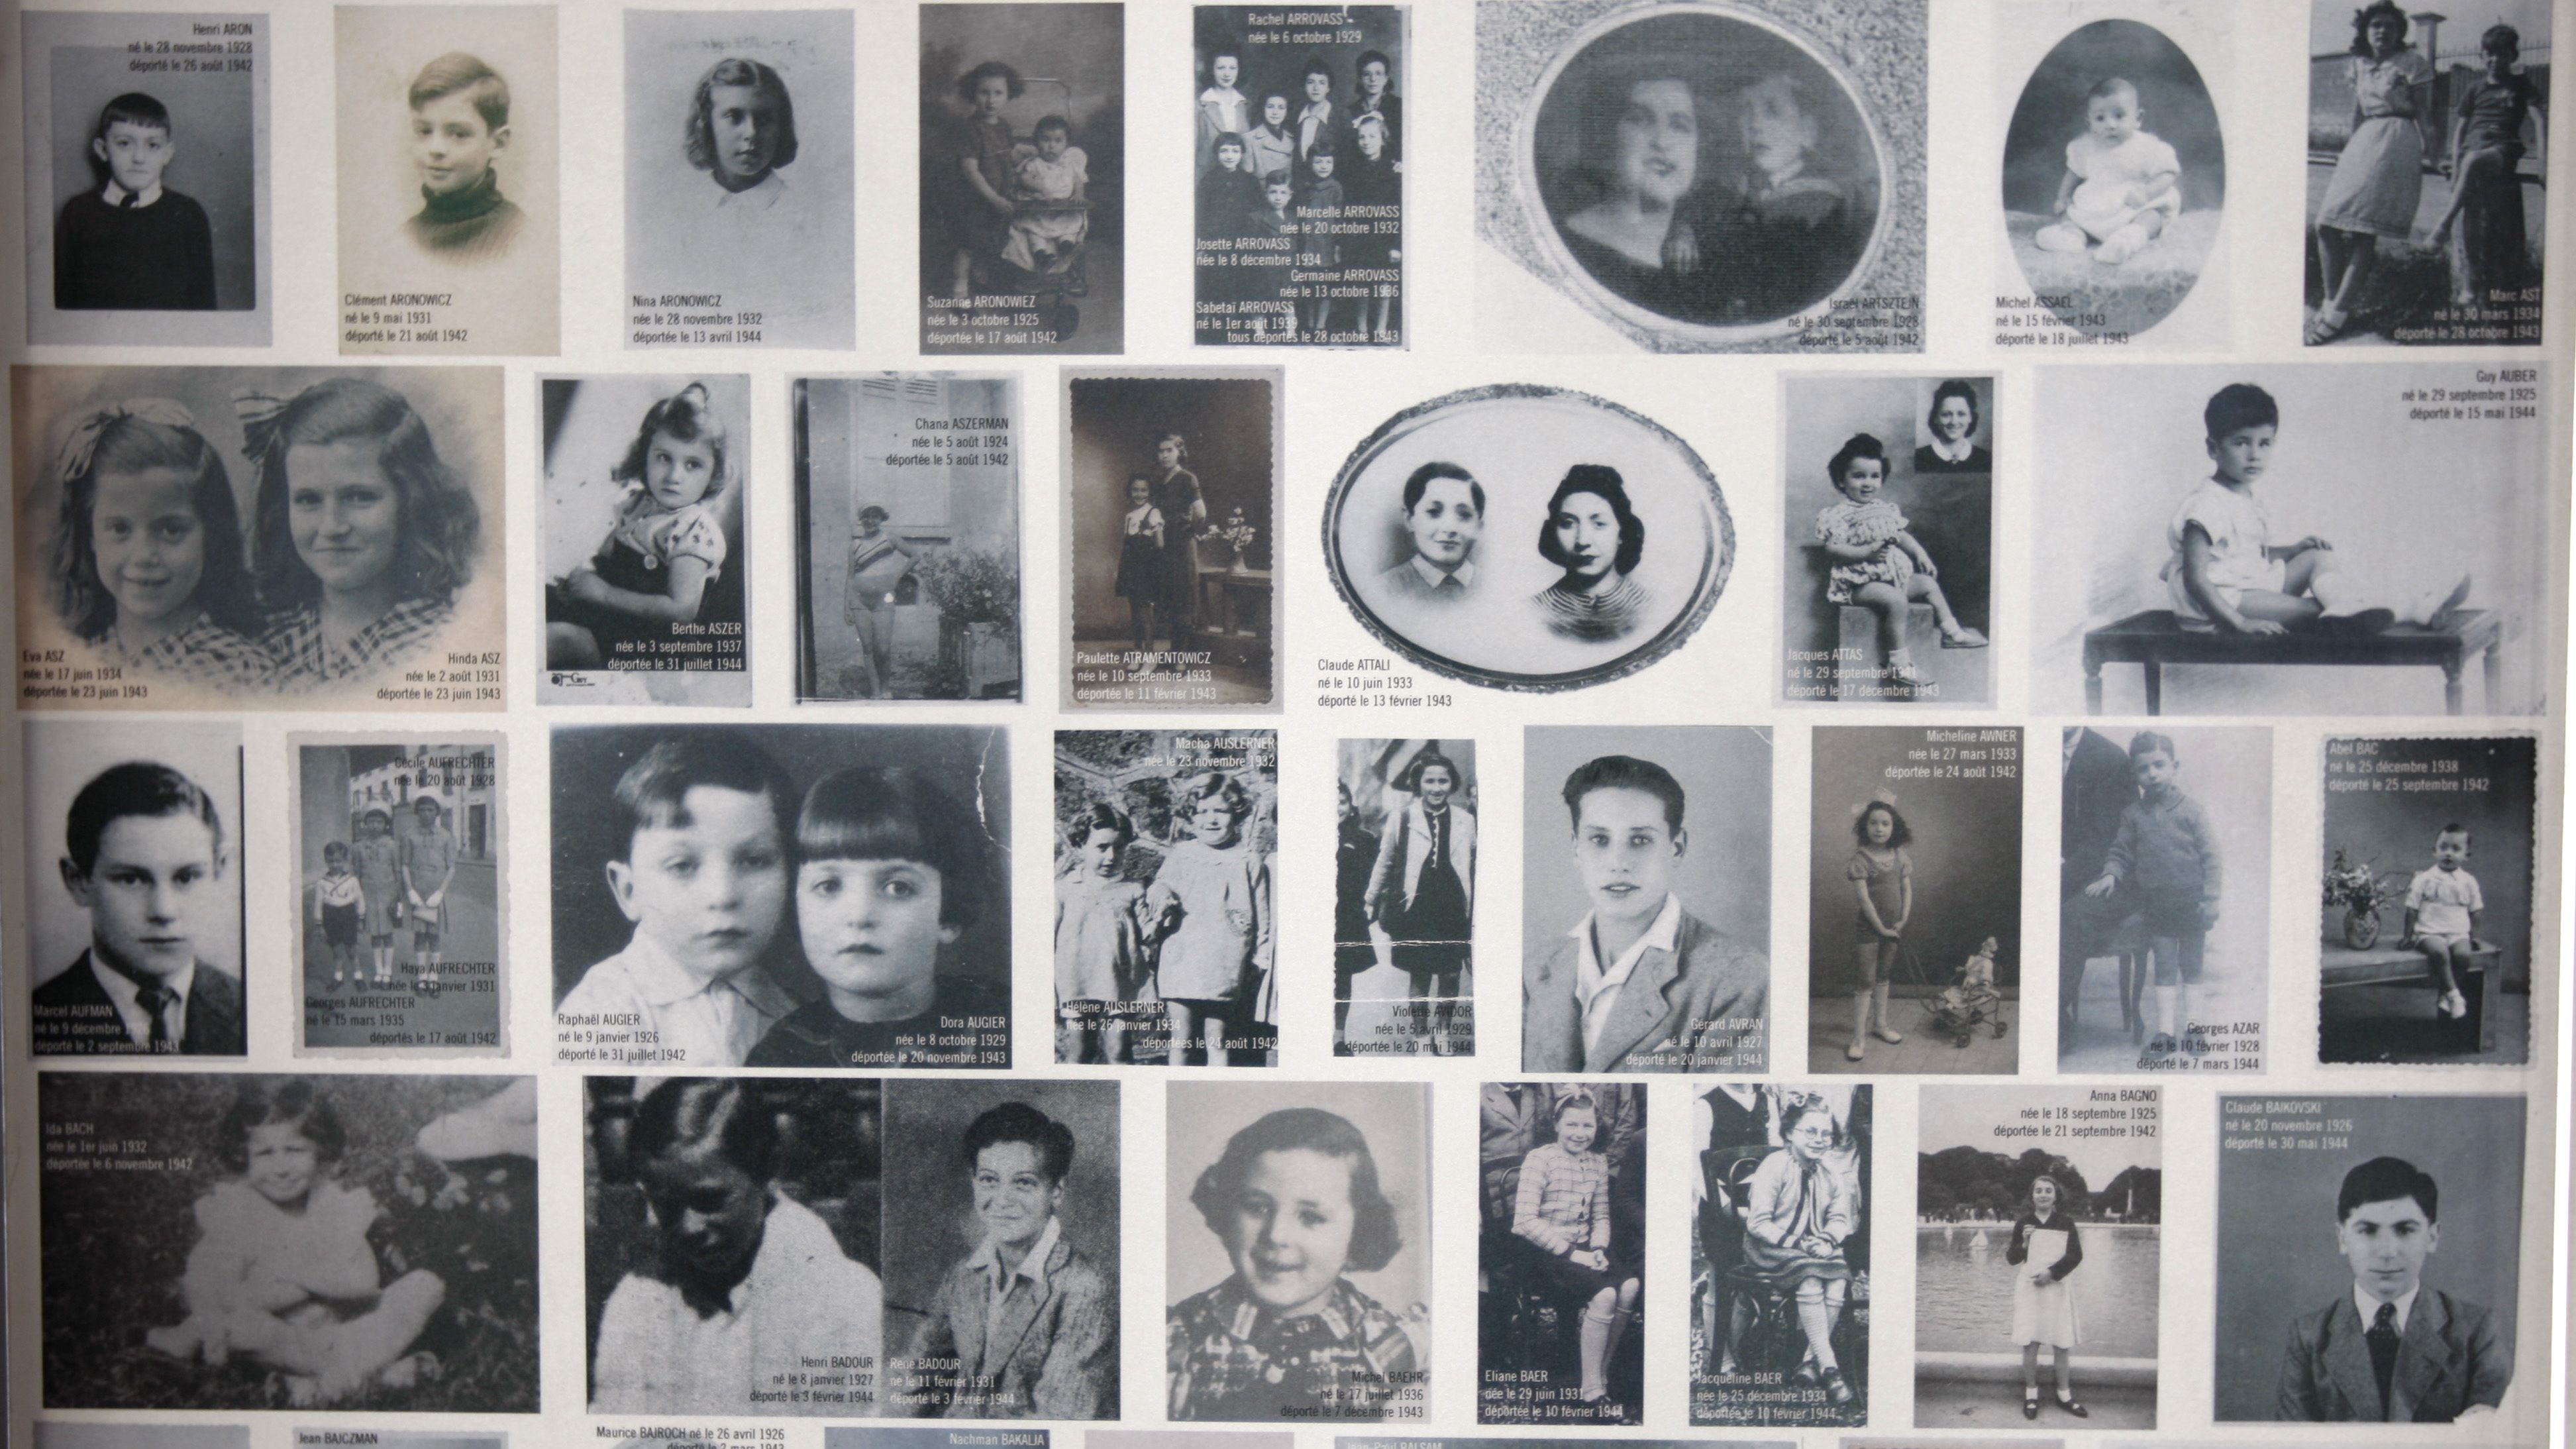 Some of  2.500 headshots of young Jews deported from France during WWII are put on display at the Shoah Memorial in Paris, February 18, 2008. France's President Nicolas Sarkozy proposed February 13  that primary school children should know the name and life story of a French-Jewish child who died in the Holocaust.    REUTERS/Charles Platiau  (FRANCE) - RTR1X8ZT